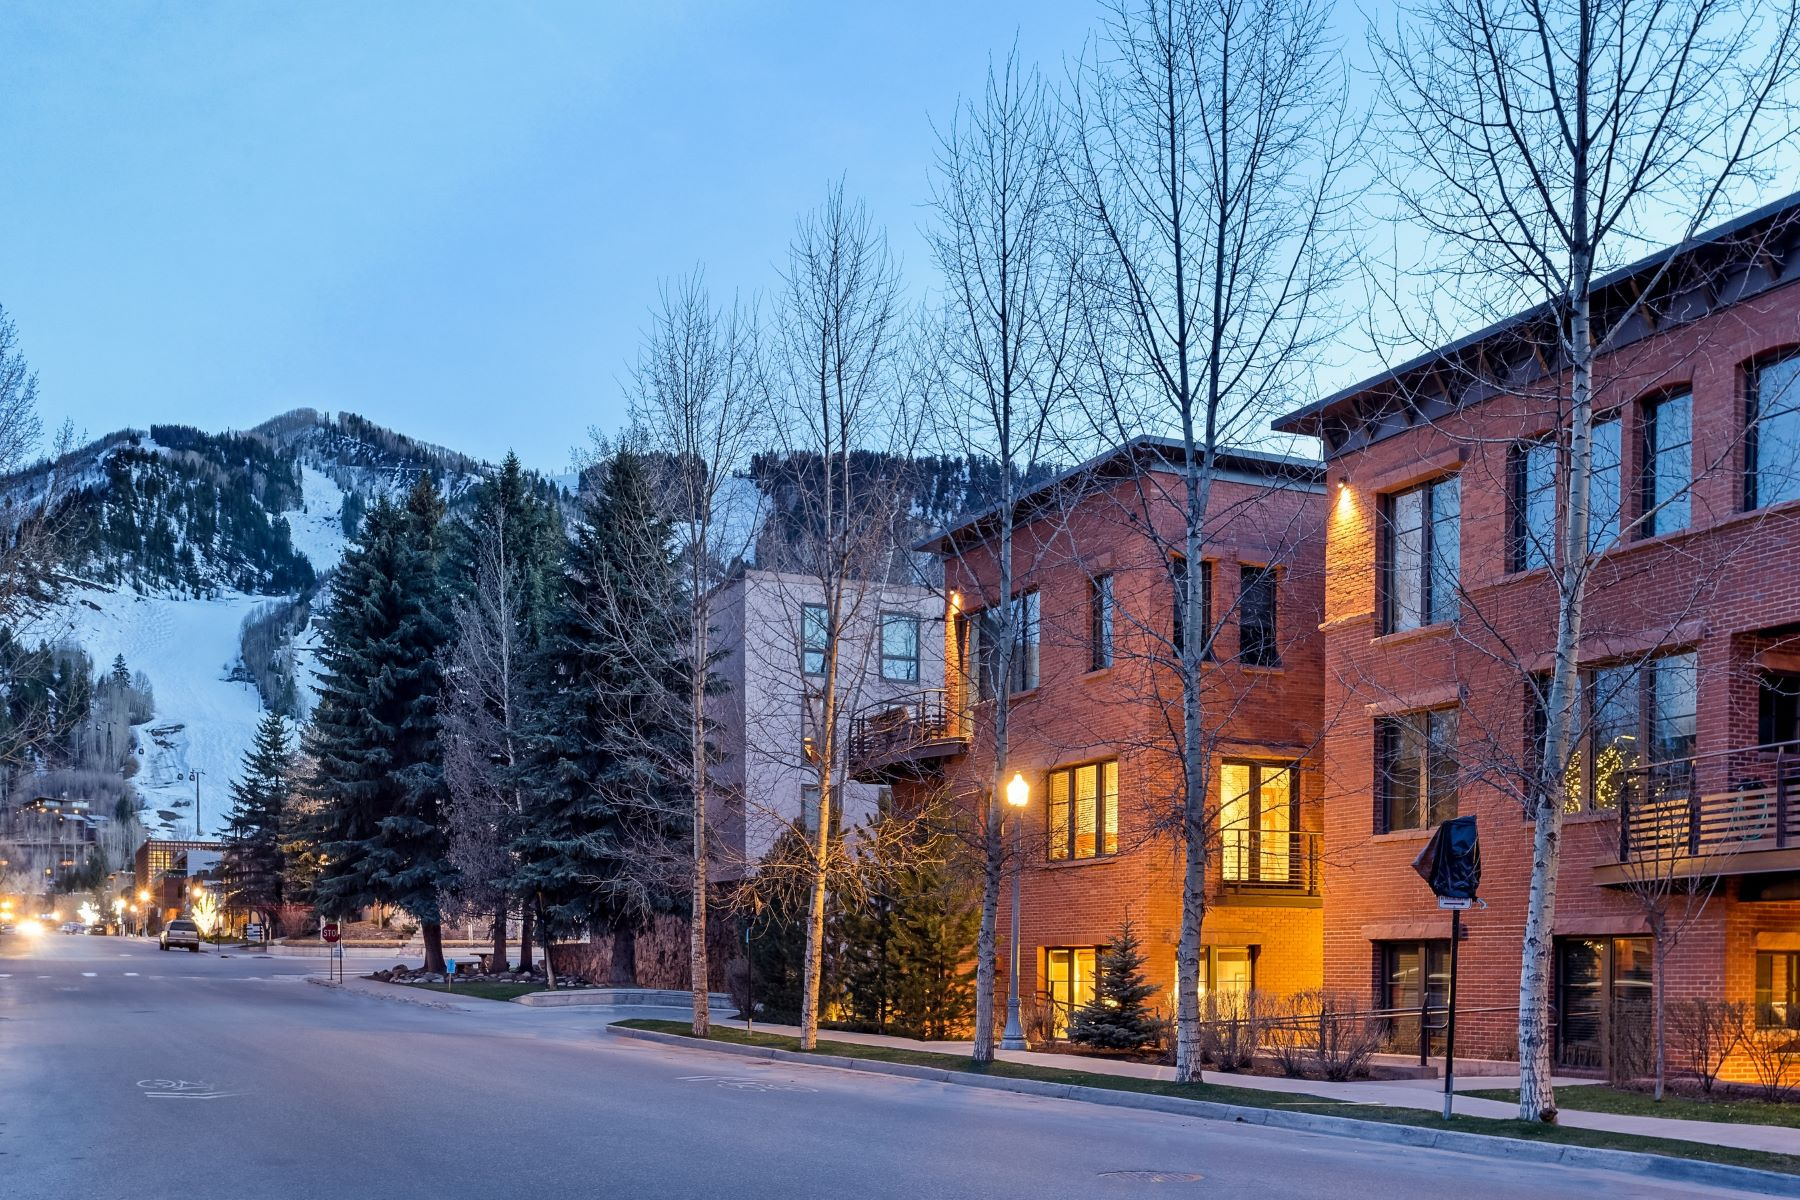 Single Family Home for Active at Convenient Location At Obermeyer Place 101 N Spring Street Unit #103 Aspen, Colorado 81611 United States